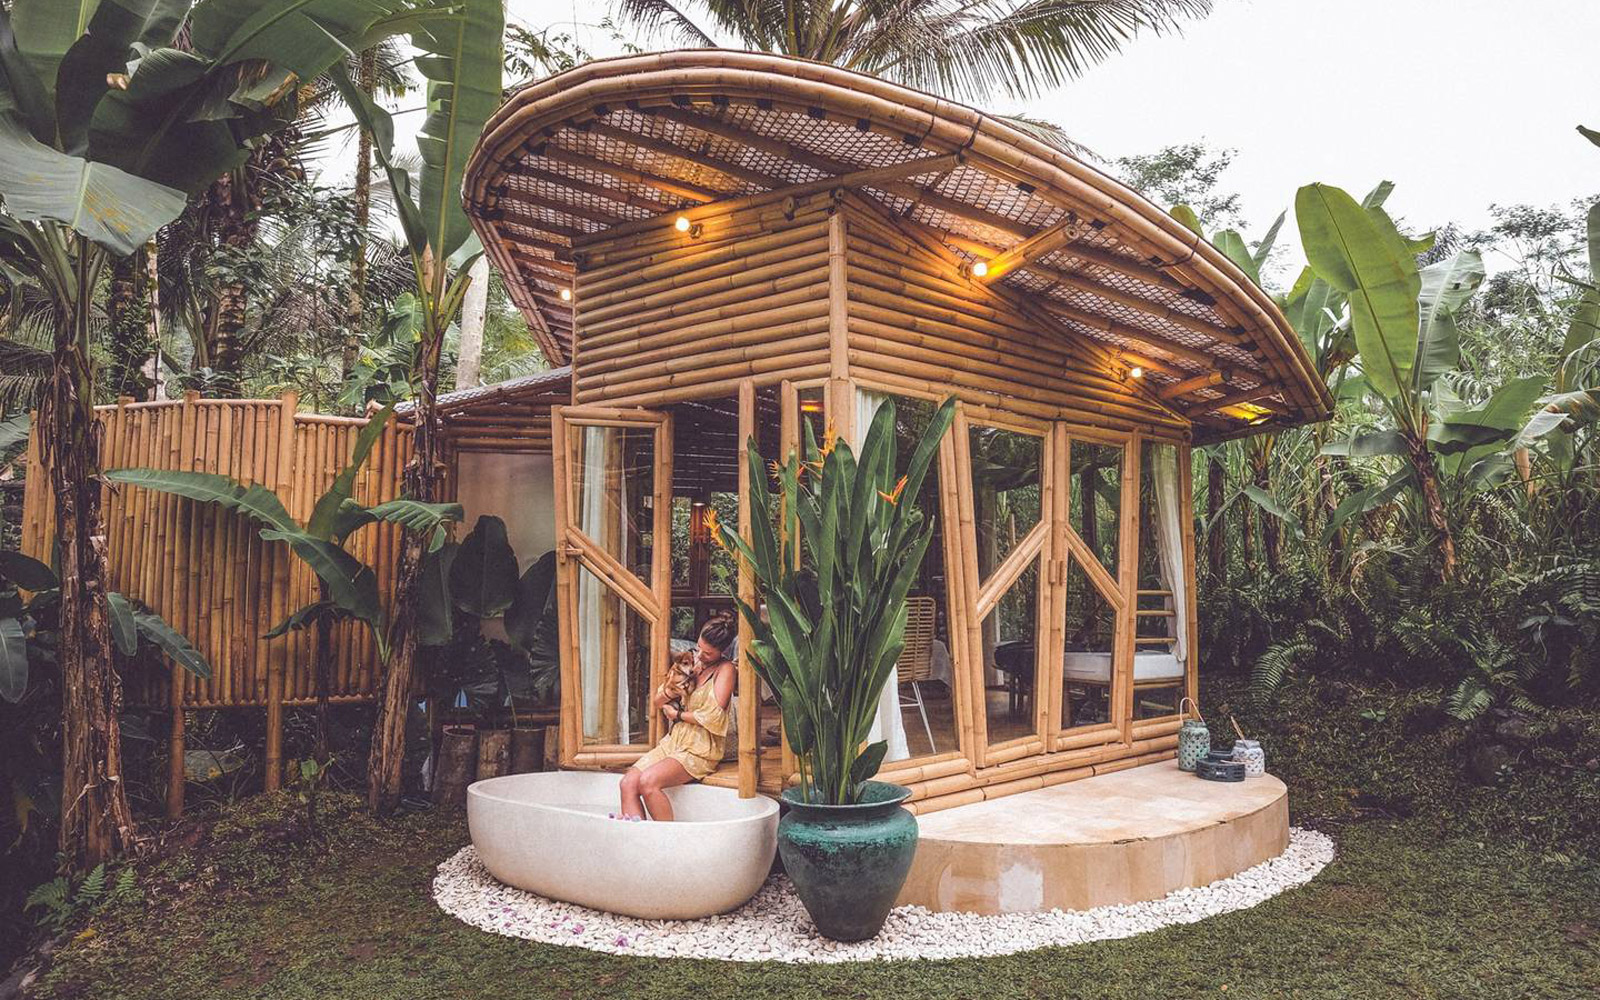 Stay in a Luxurious Bamboo Bungalow in Bali for Only $97 a Night